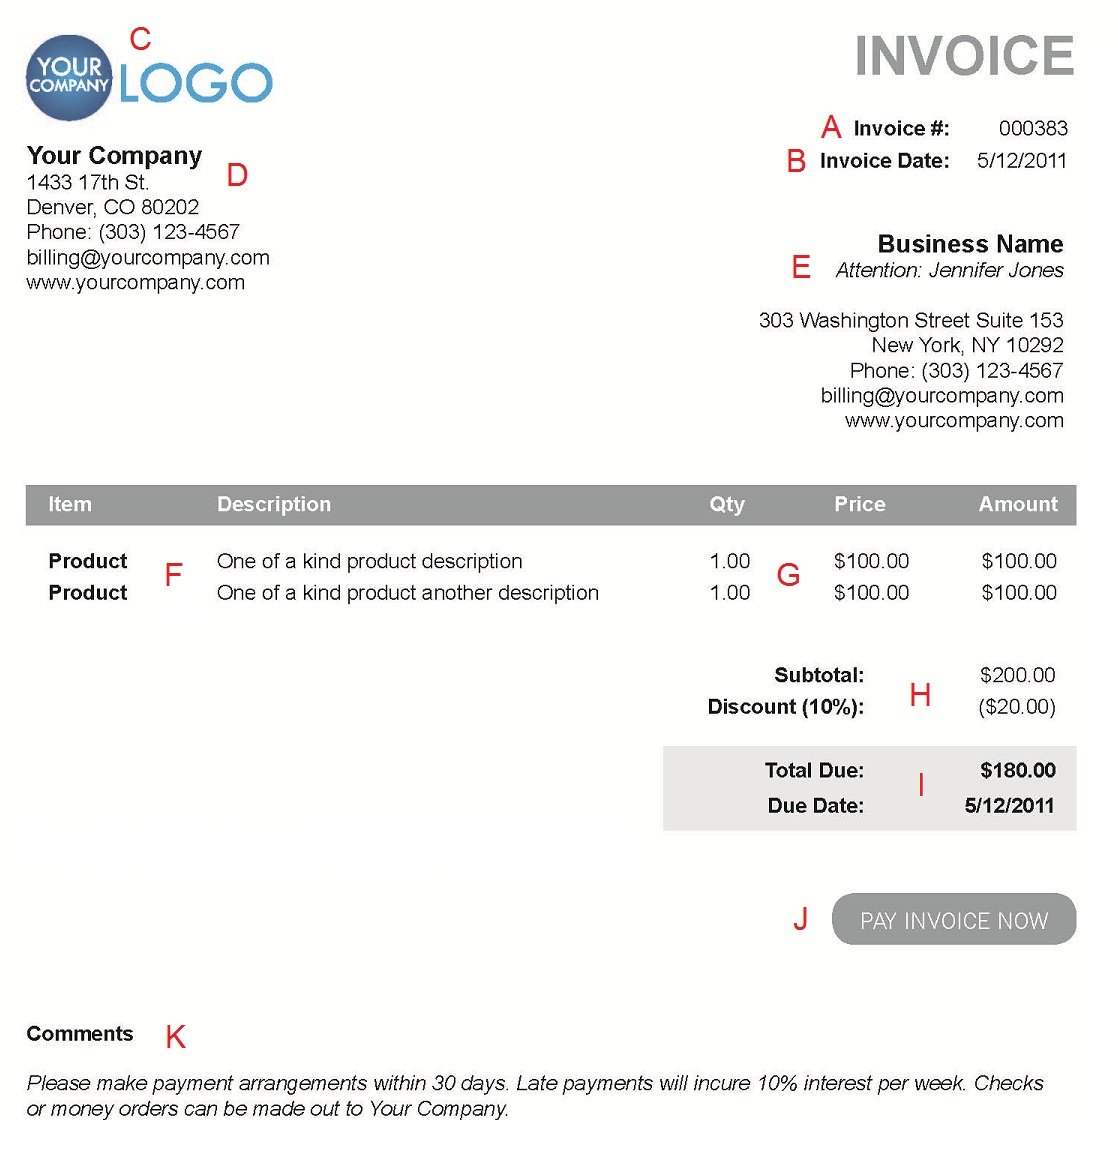 Usdgus  Outstanding The  Different Sections Of An Electronic Payment Invoice With Lovely A  With Agreeable Create Your Own Invoice Also Invoice Excel In Addition Paypal Send Invoice Fee And Invoice Vs Statement As Well As Dealer Invoice Price By Vin Additionally Tracing Bills Of Lading To Sales Invoices Provides Evidence That From Paysimplecom With Usdgus  Lovely The  Different Sections Of An Electronic Payment Invoice With Agreeable A  And Outstanding Create Your Own Invoice Also Invoice Excel In Addition Paypal Send Invoice Fee From Paysimplecom